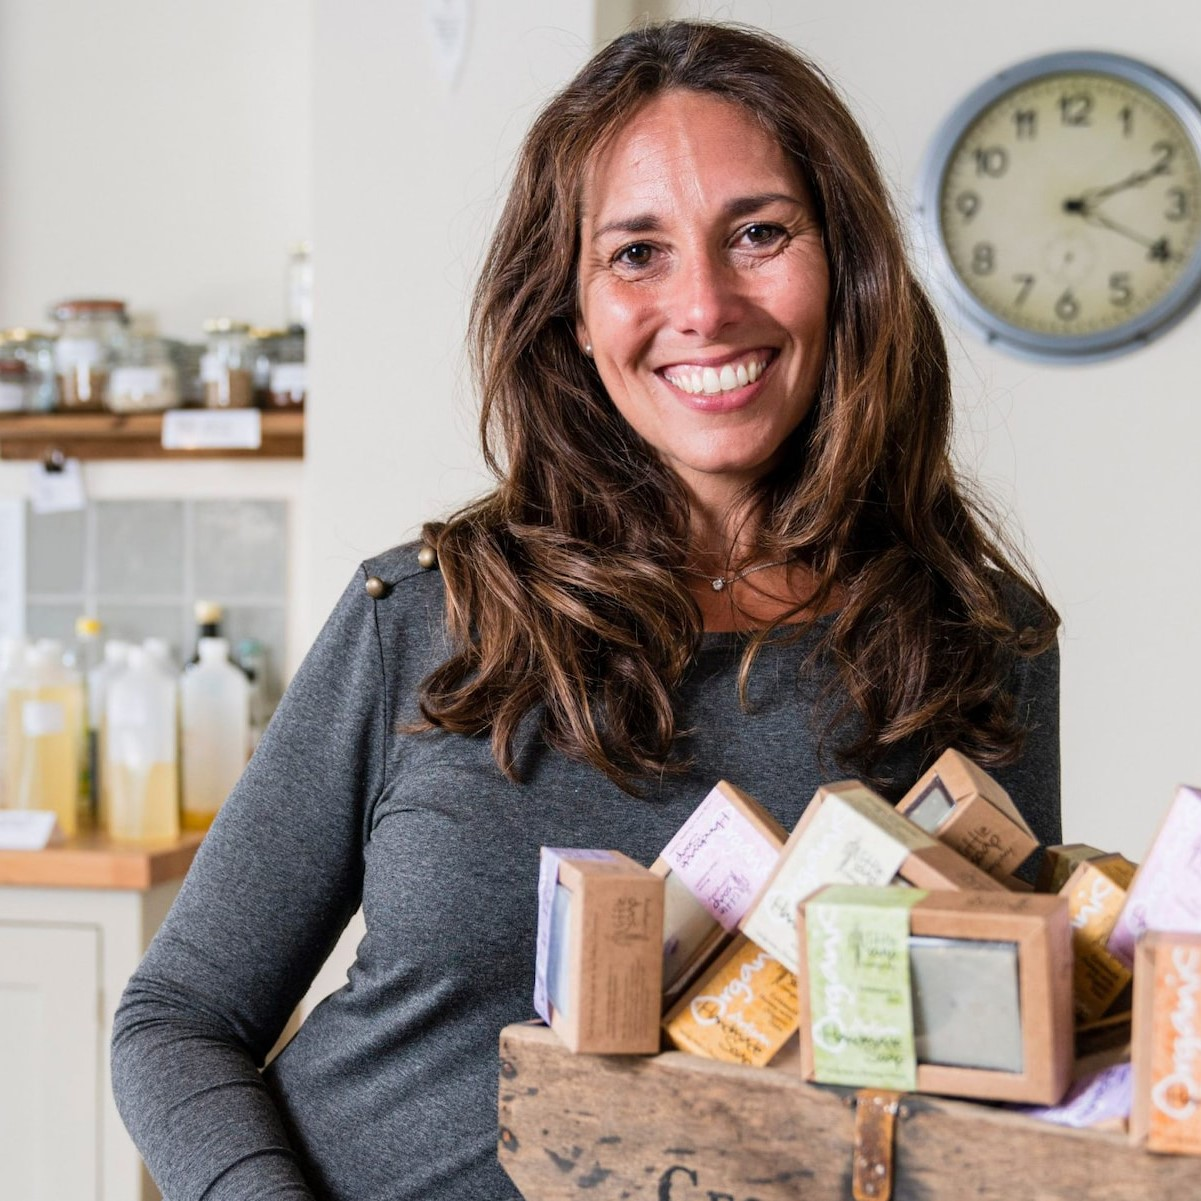 Behind the Soap: Why we Use the Ingredients we Use